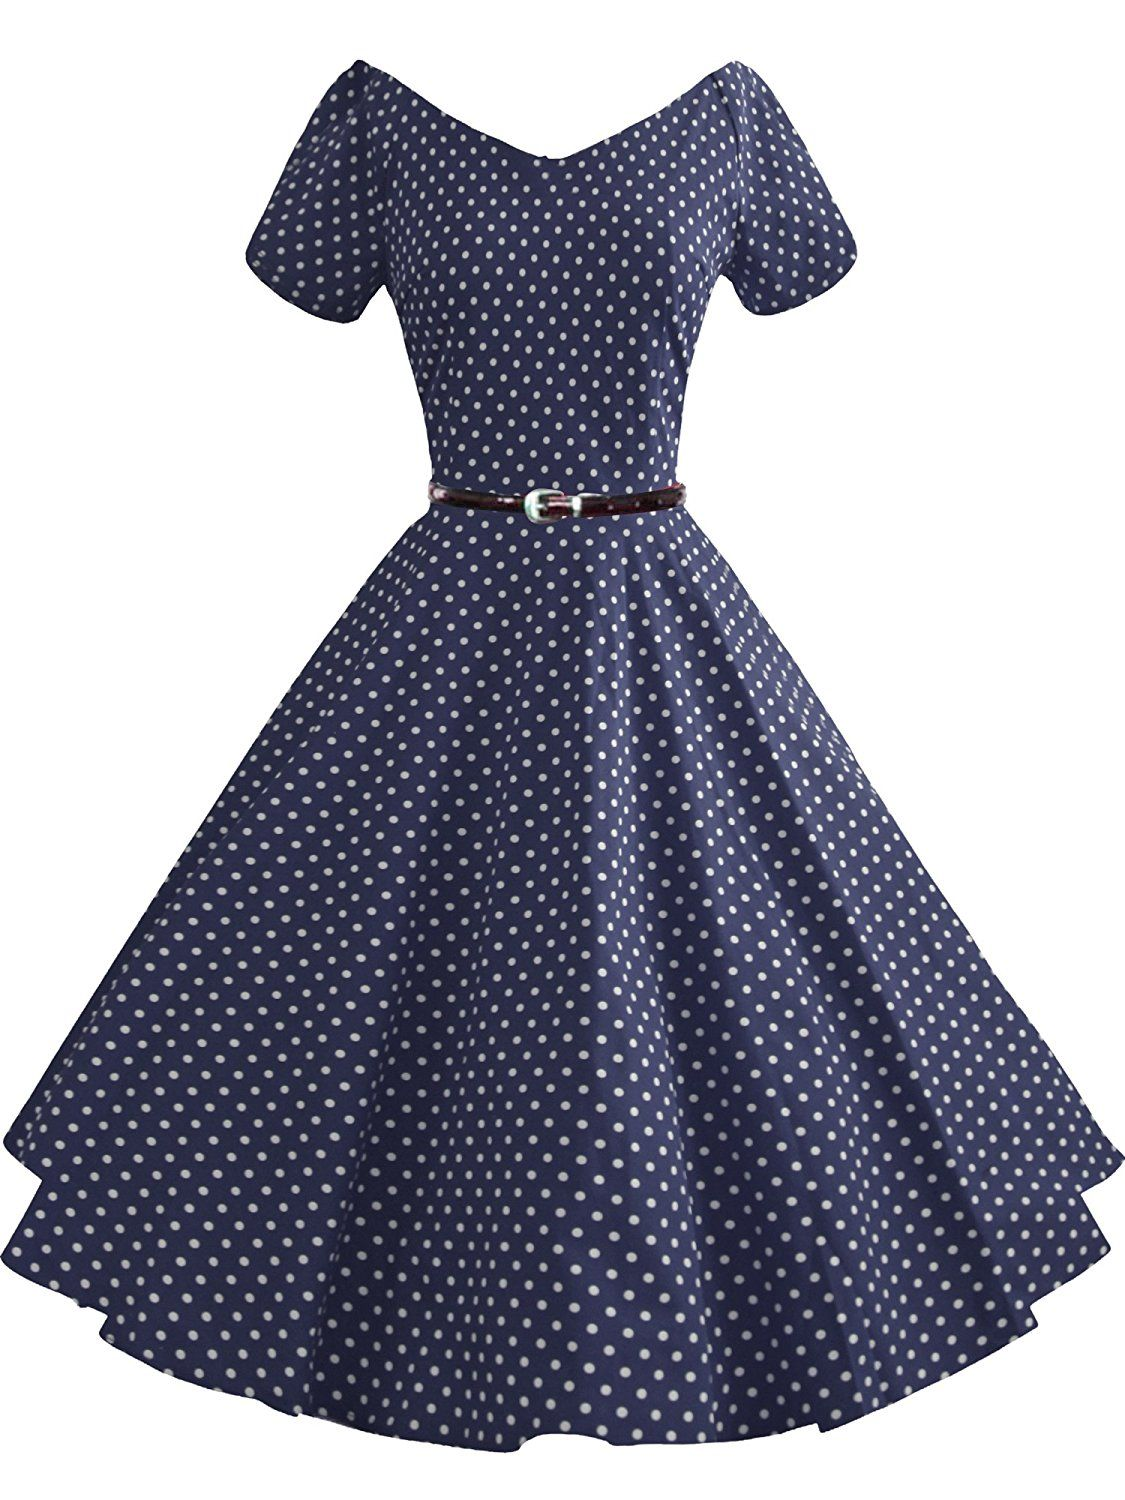 Luouse 40s 50s 60s Vintage V Neck Swing Rockabilly Pinup Ball Gown Party Dress At Amazon Women S Clothing Store Classy Dress Vintage Dresses Fashion Dresses [ 1500 x 1125 Pixel ]